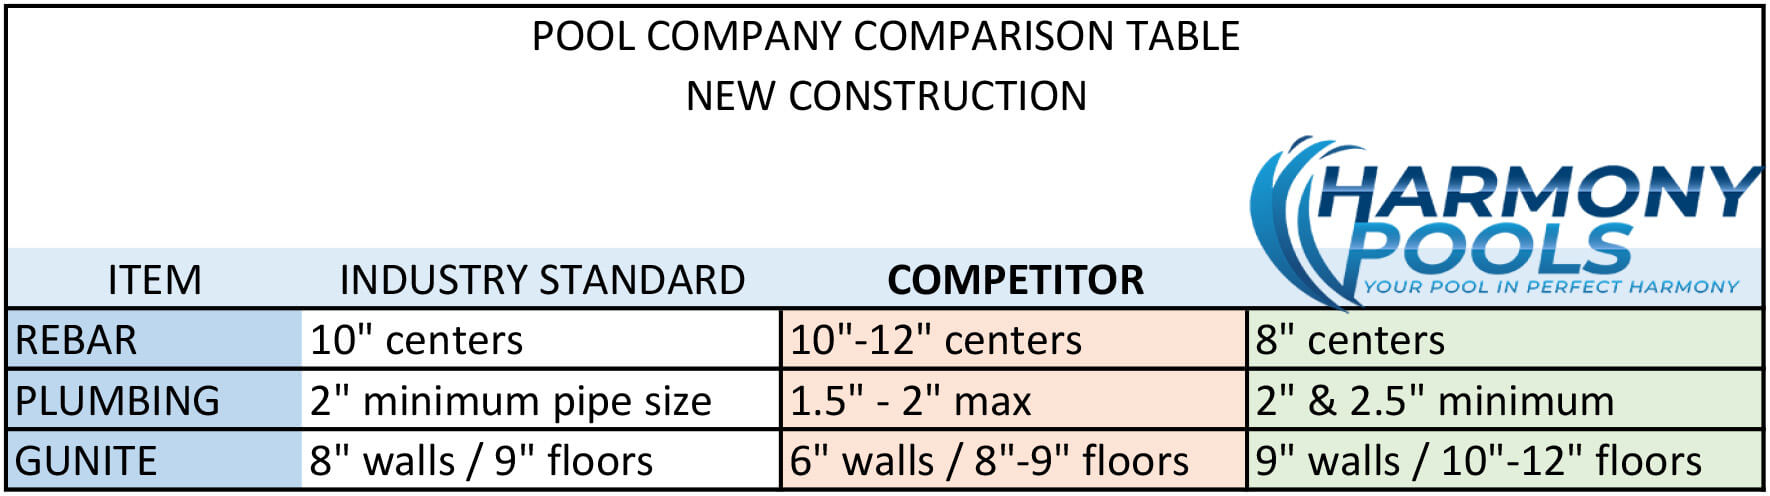 POOL CONSTRUCTION COMPANY COMPARISON TABLE